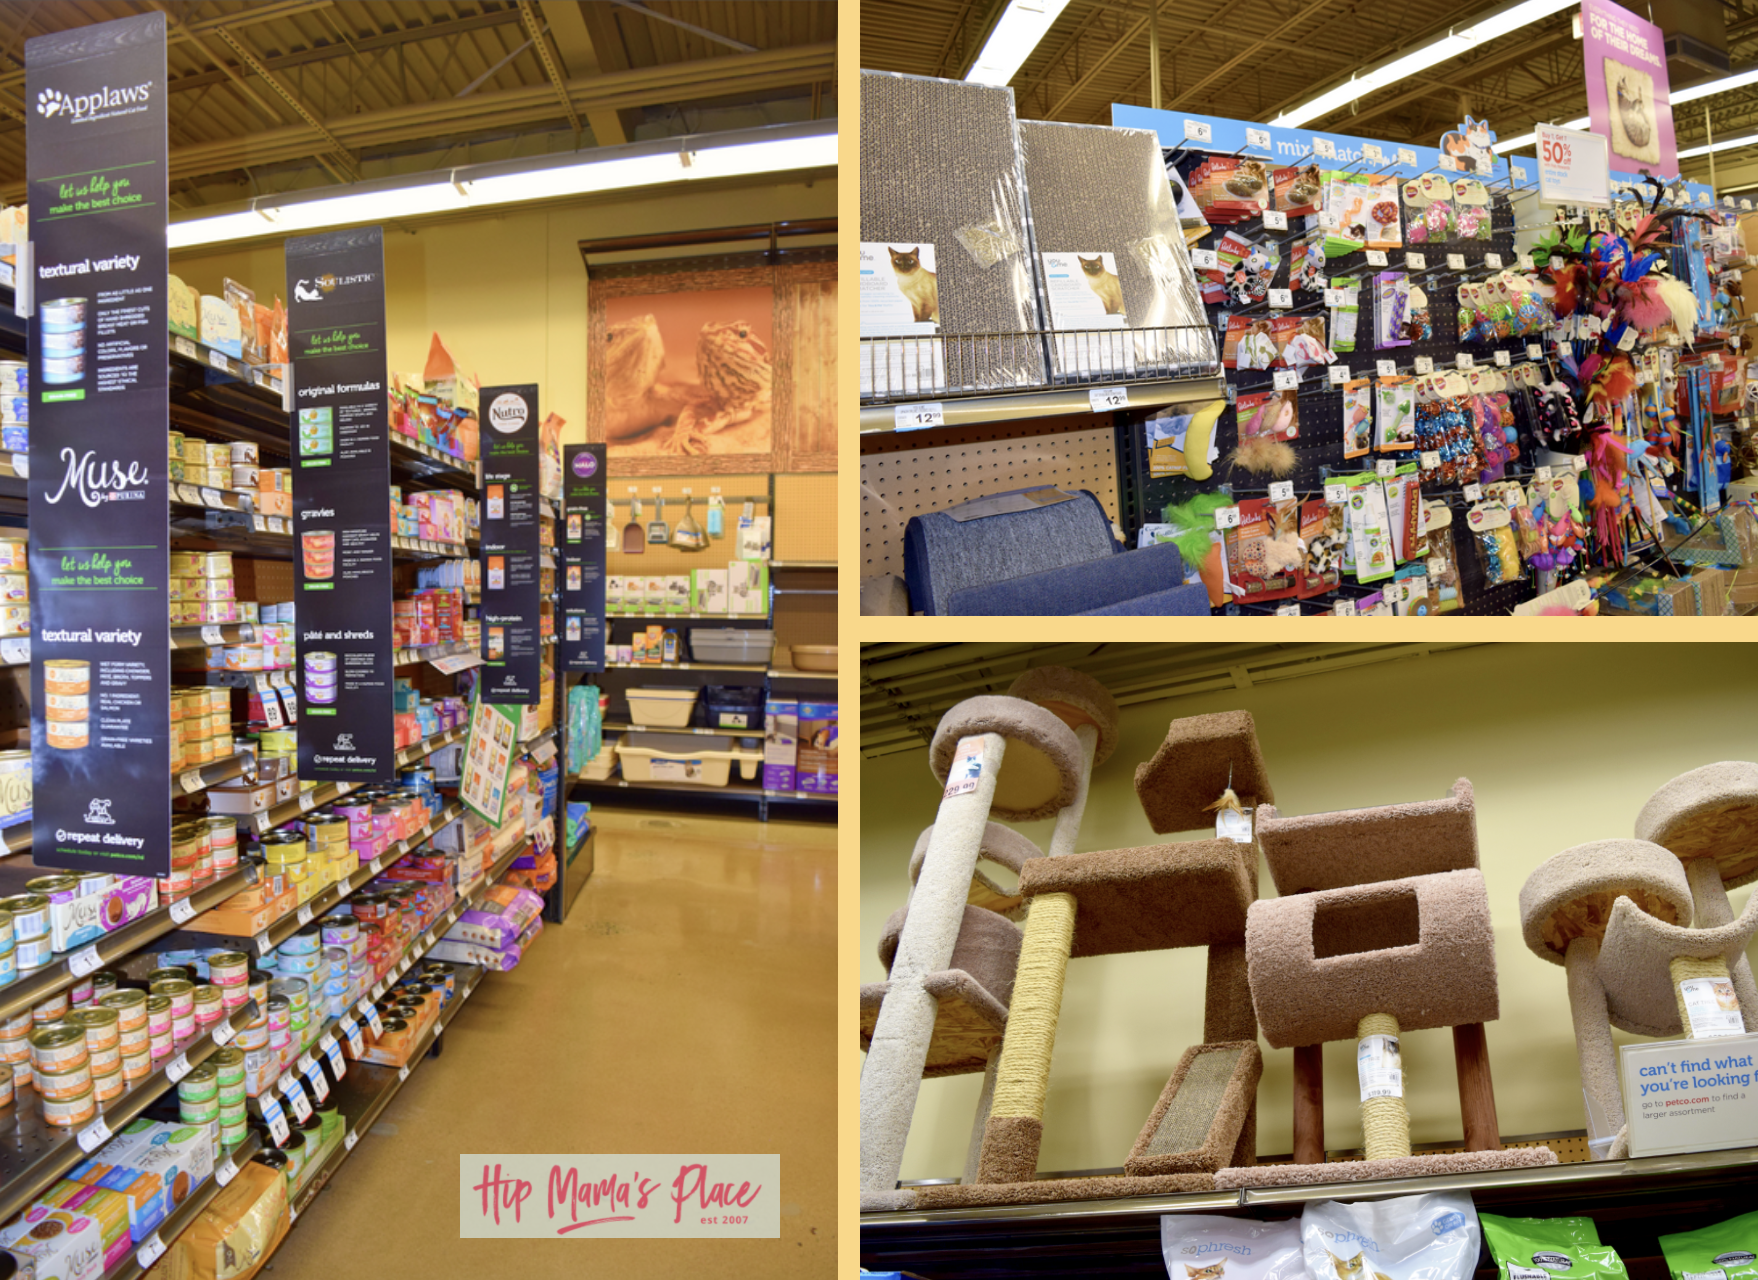 We love the convenience of getting our Purina Muse grain free wet and dry cat food at Petco!